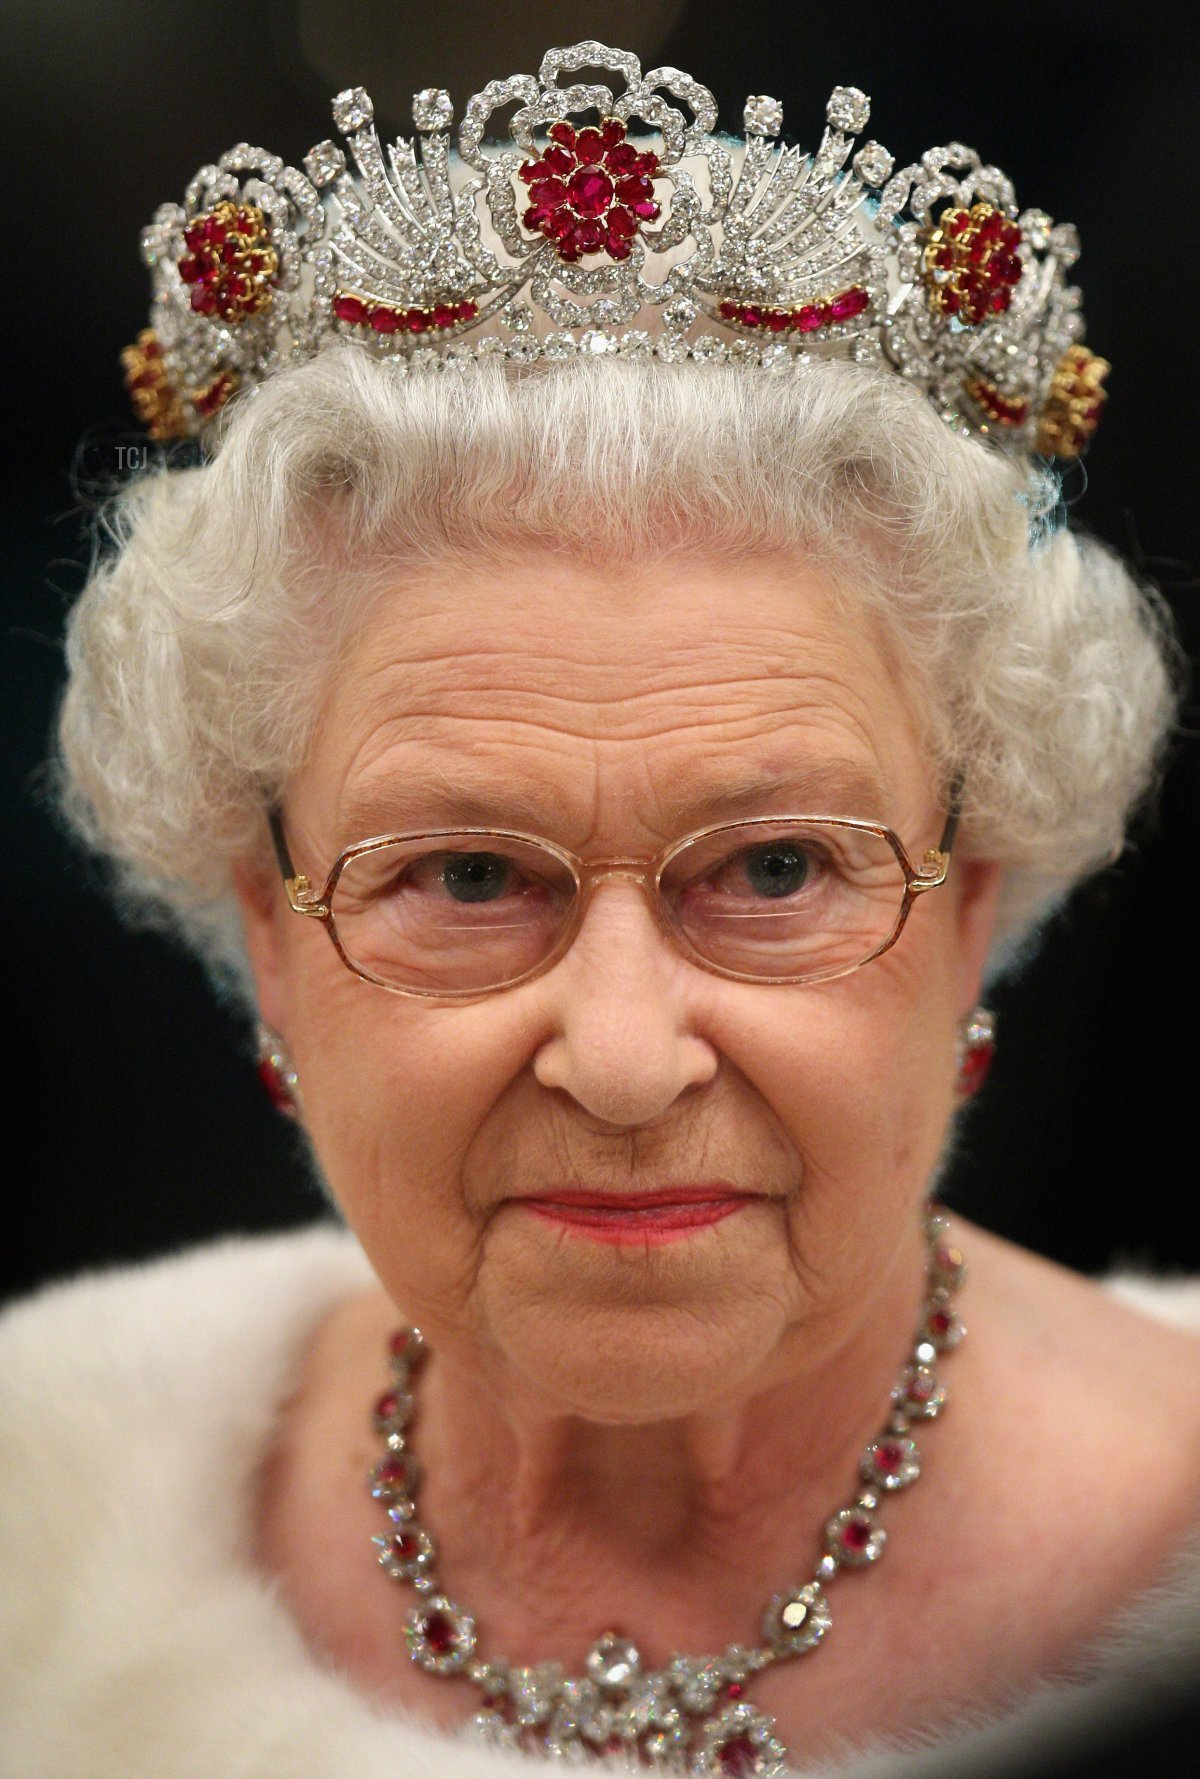 Queen Elizabeth II of the United Kingdom attends a banquet in Slovenia, 2008